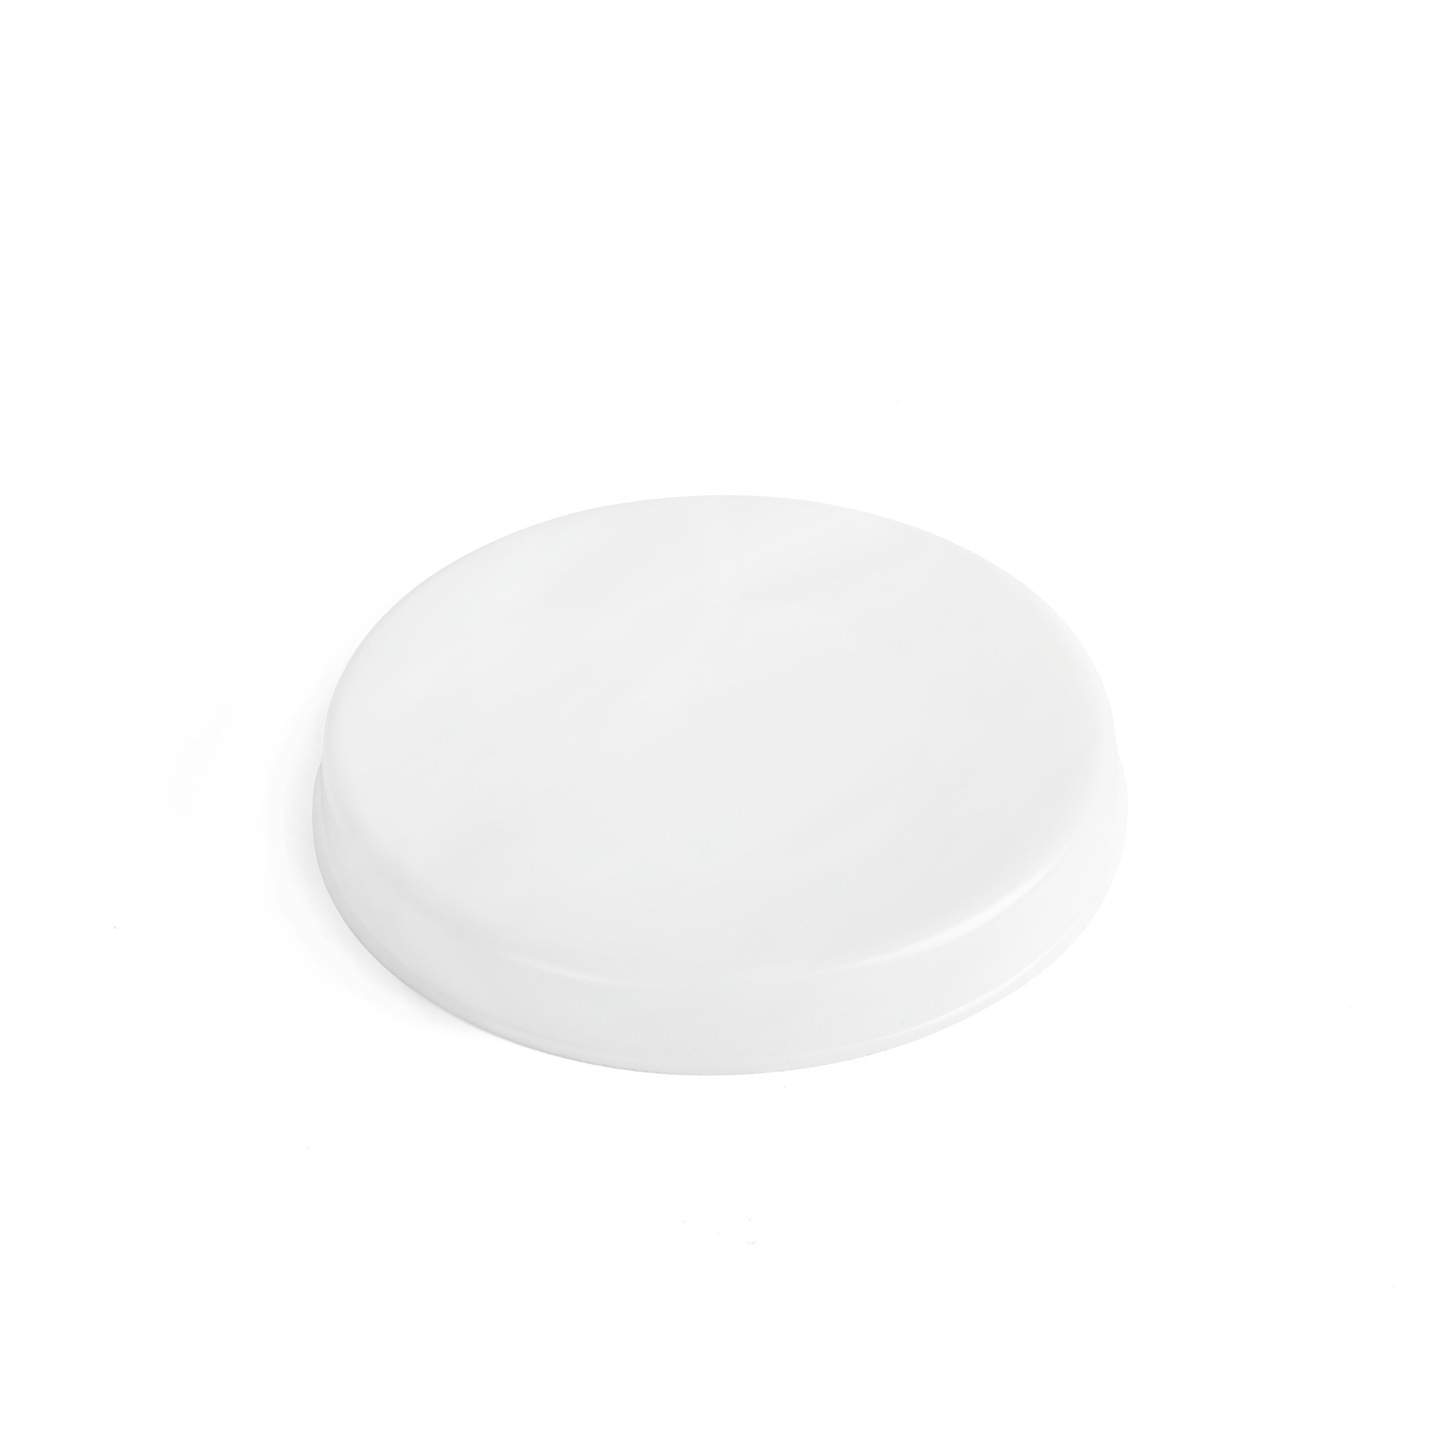 Accessory Diffuser opal for Solid LED